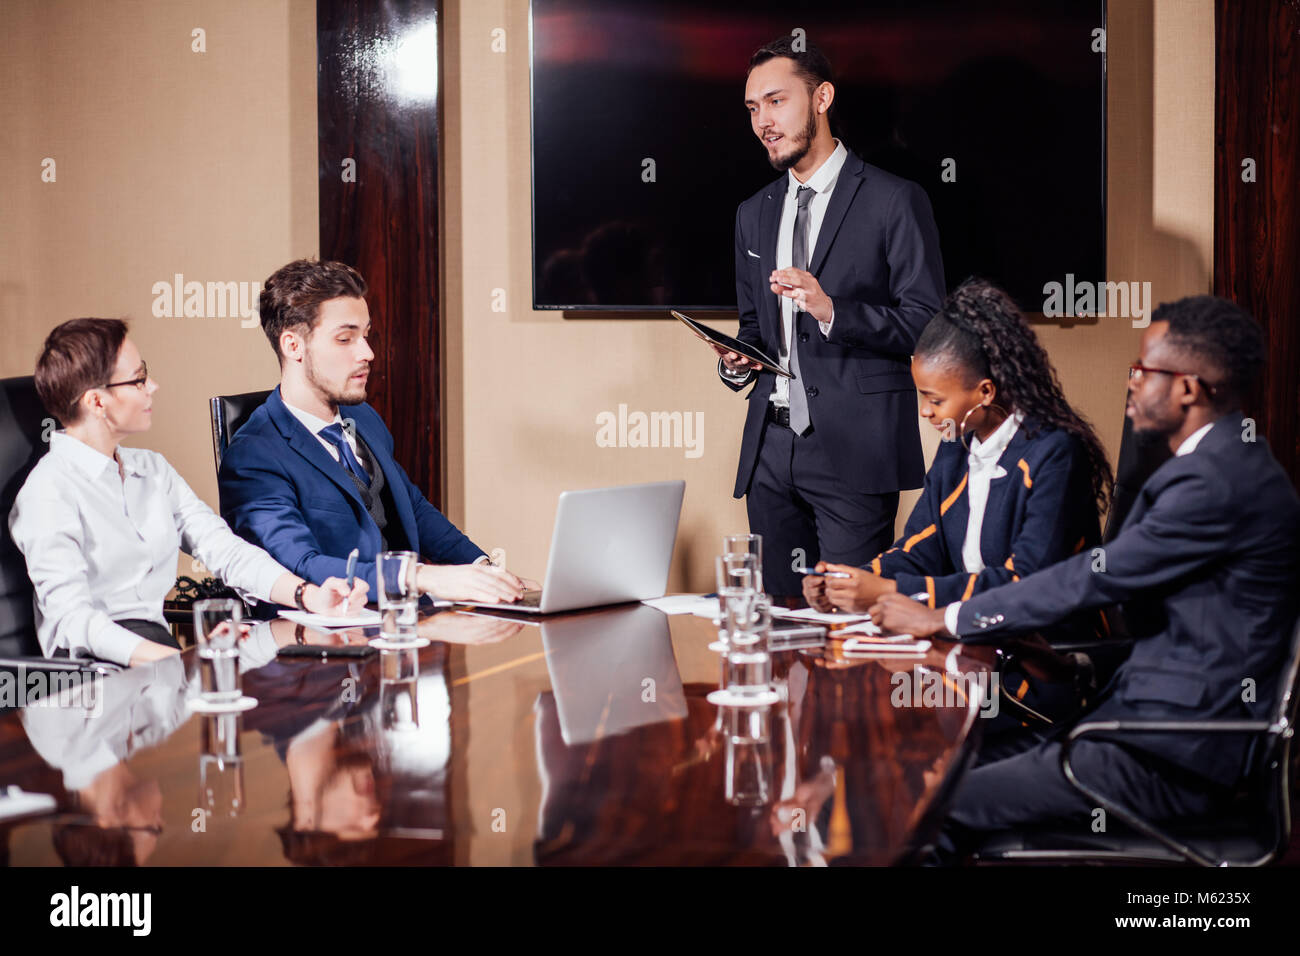 Businessman presenting to colleagues at a meeting - Stock Image